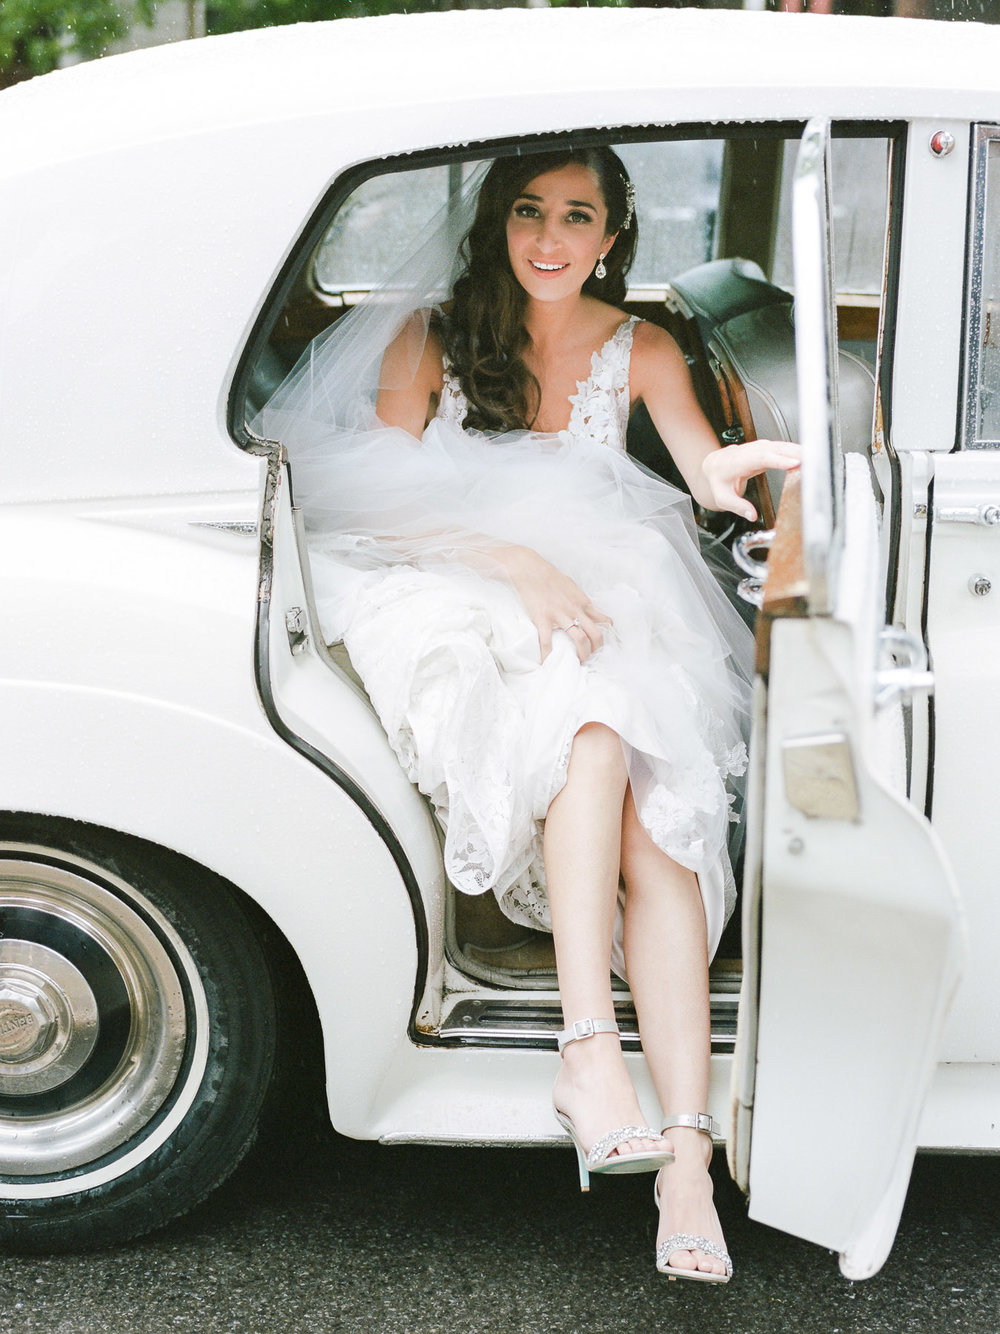 Bride Exiting Car